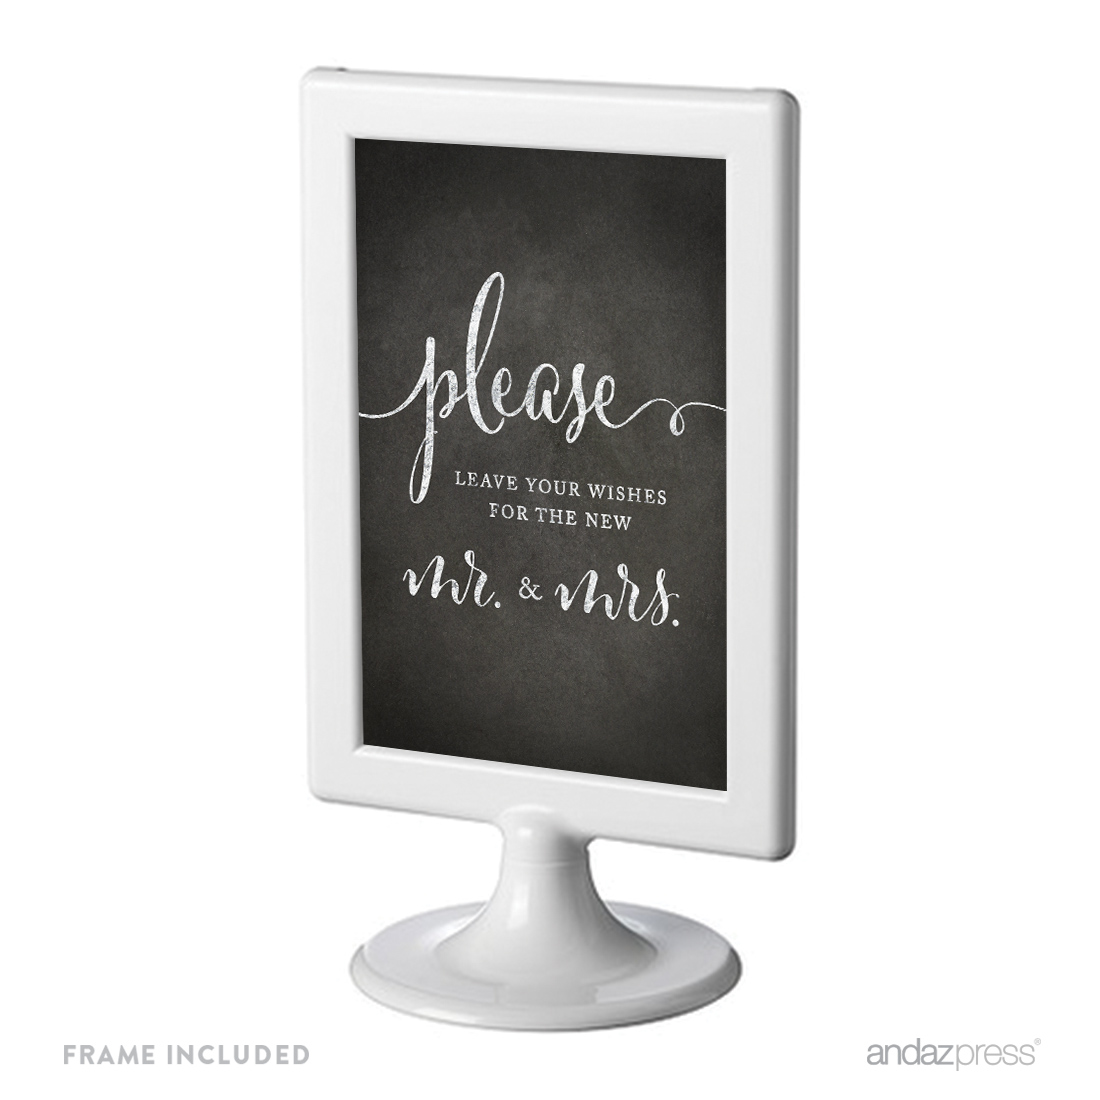 Leave Your Wishes For New Mr. & Mrs. Framed Vintage Chalkboard Wedding Party Signs